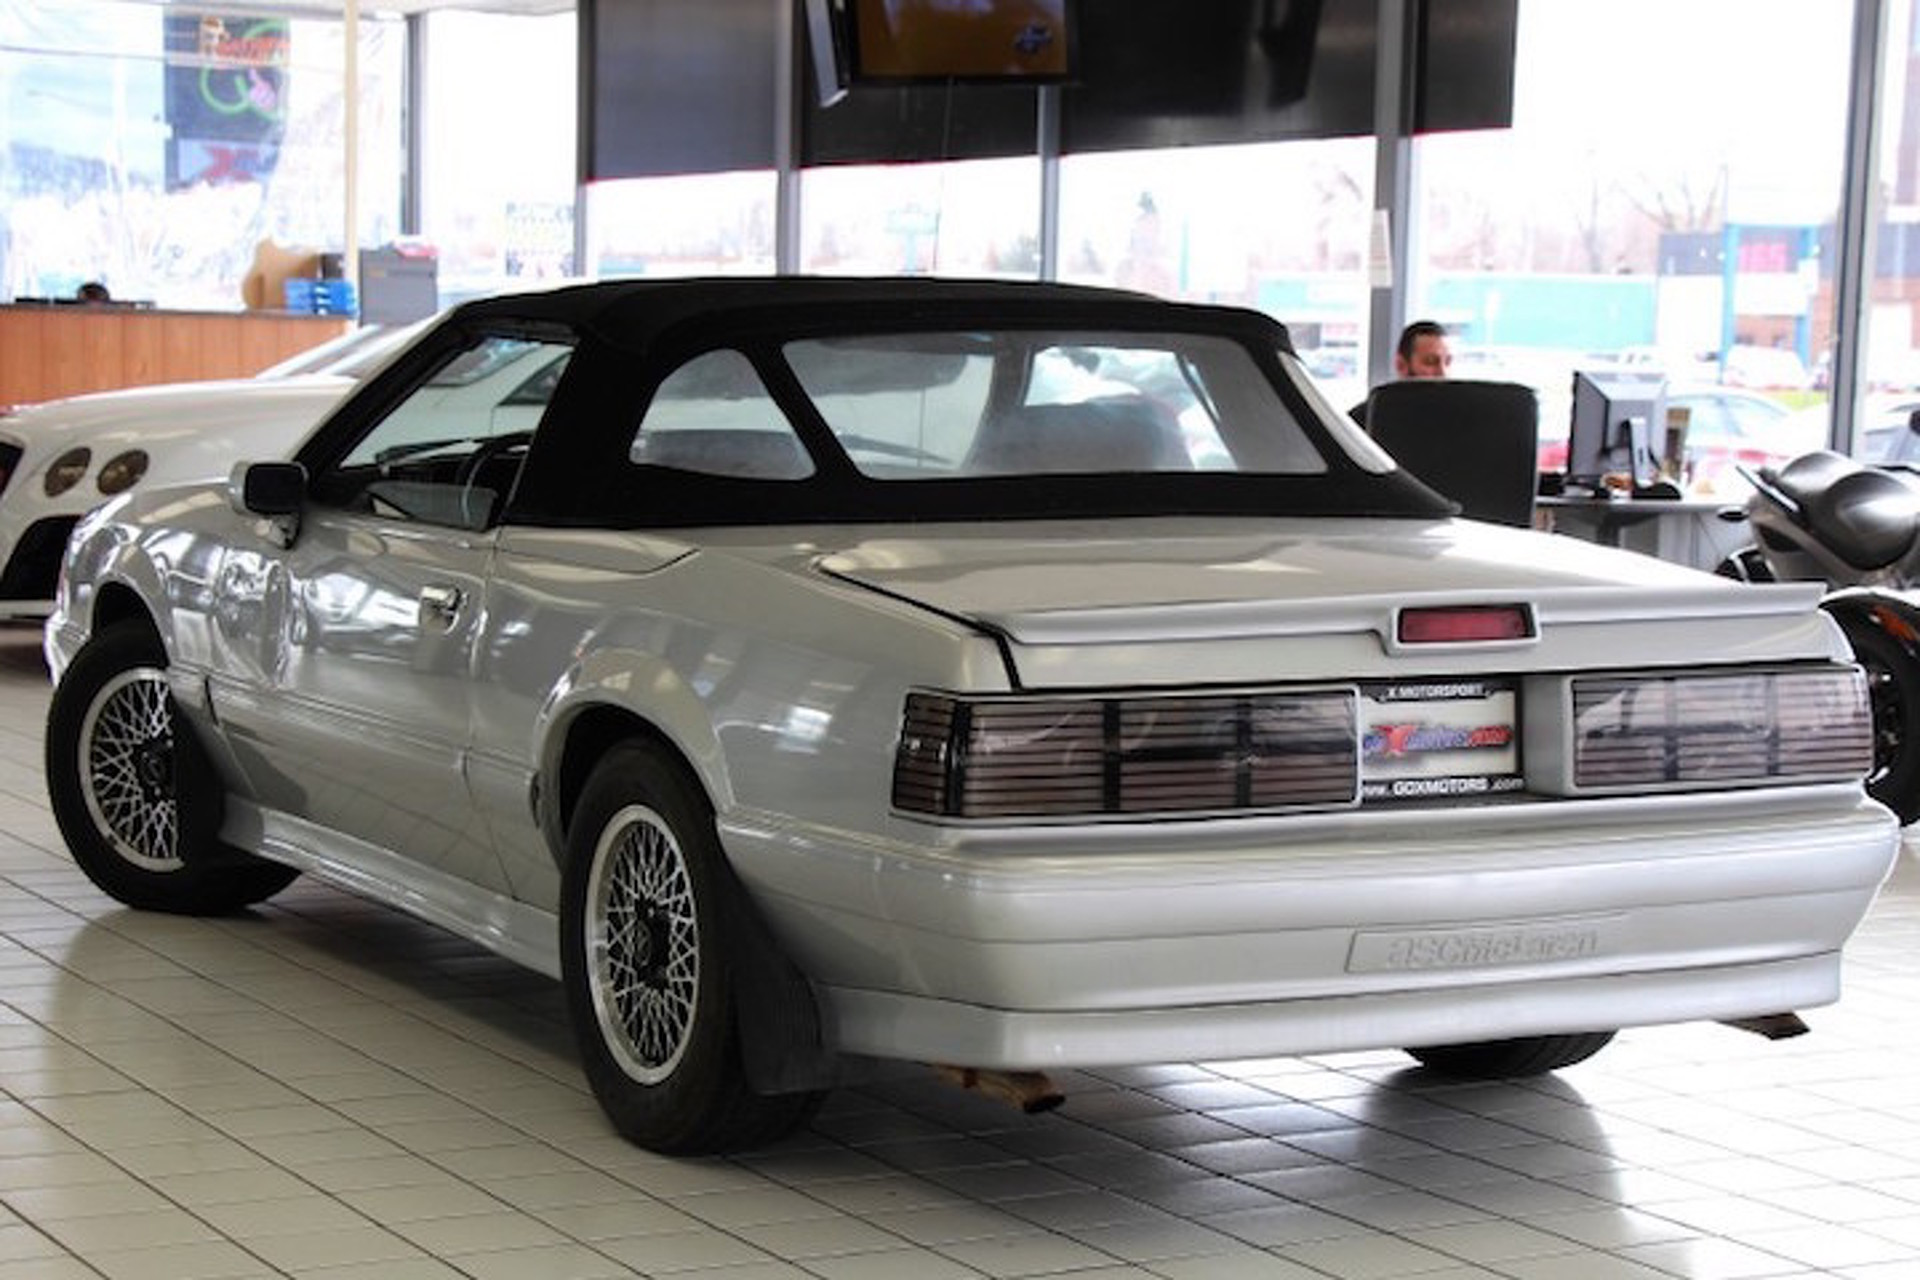 Rare ford mustang asc mclaren has the spirit of the 80s